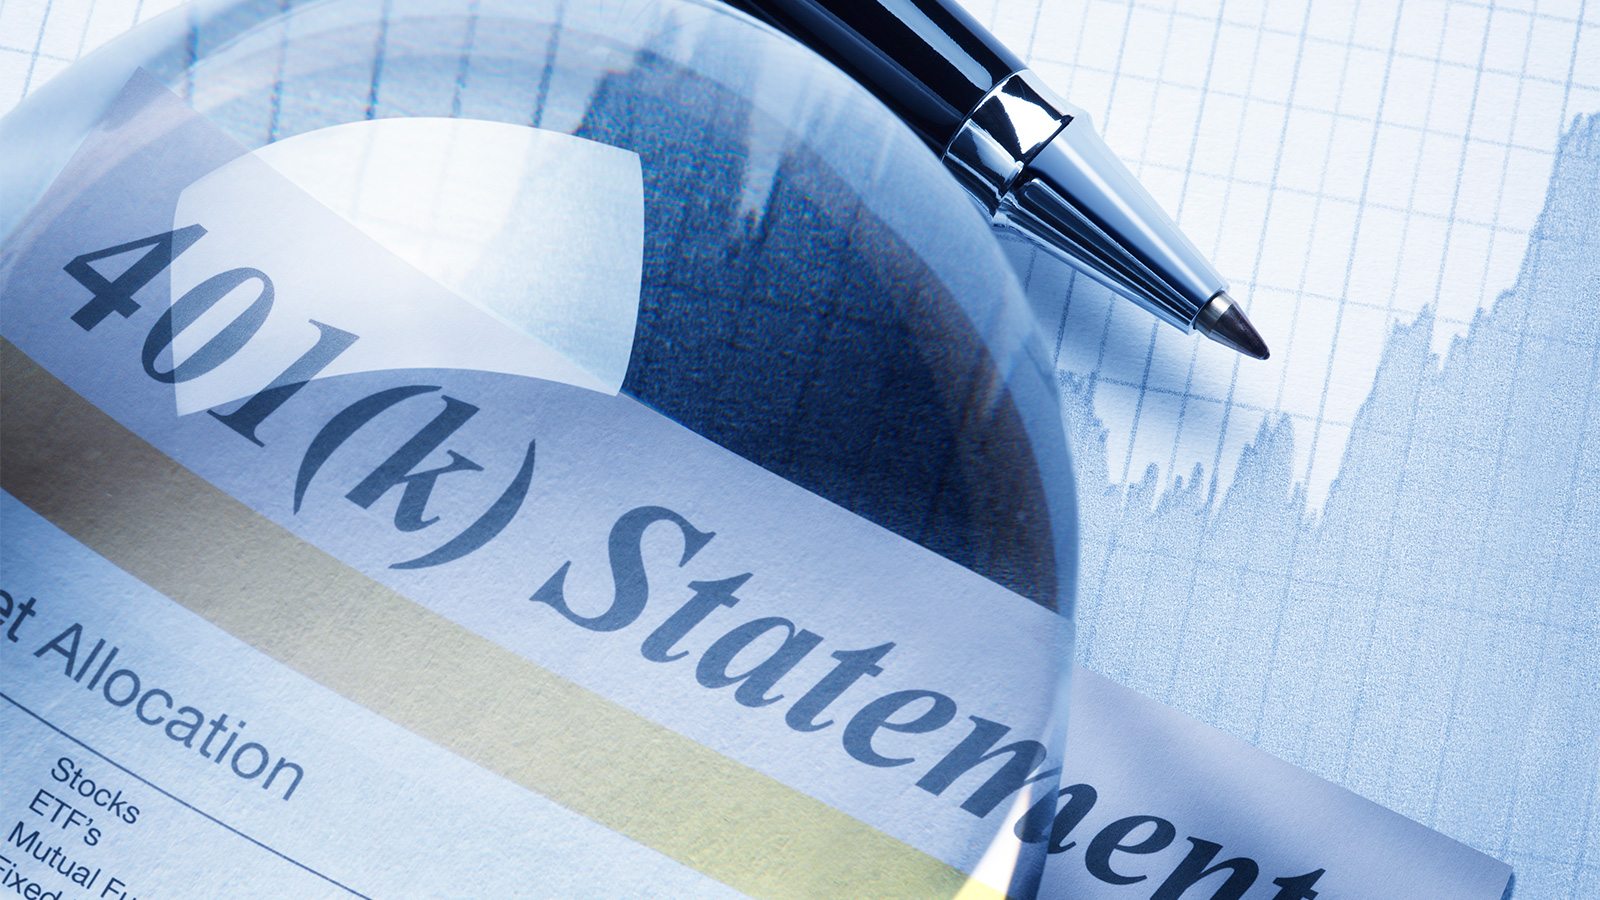 New coronavirus law allows new 401(k) distributions and loans